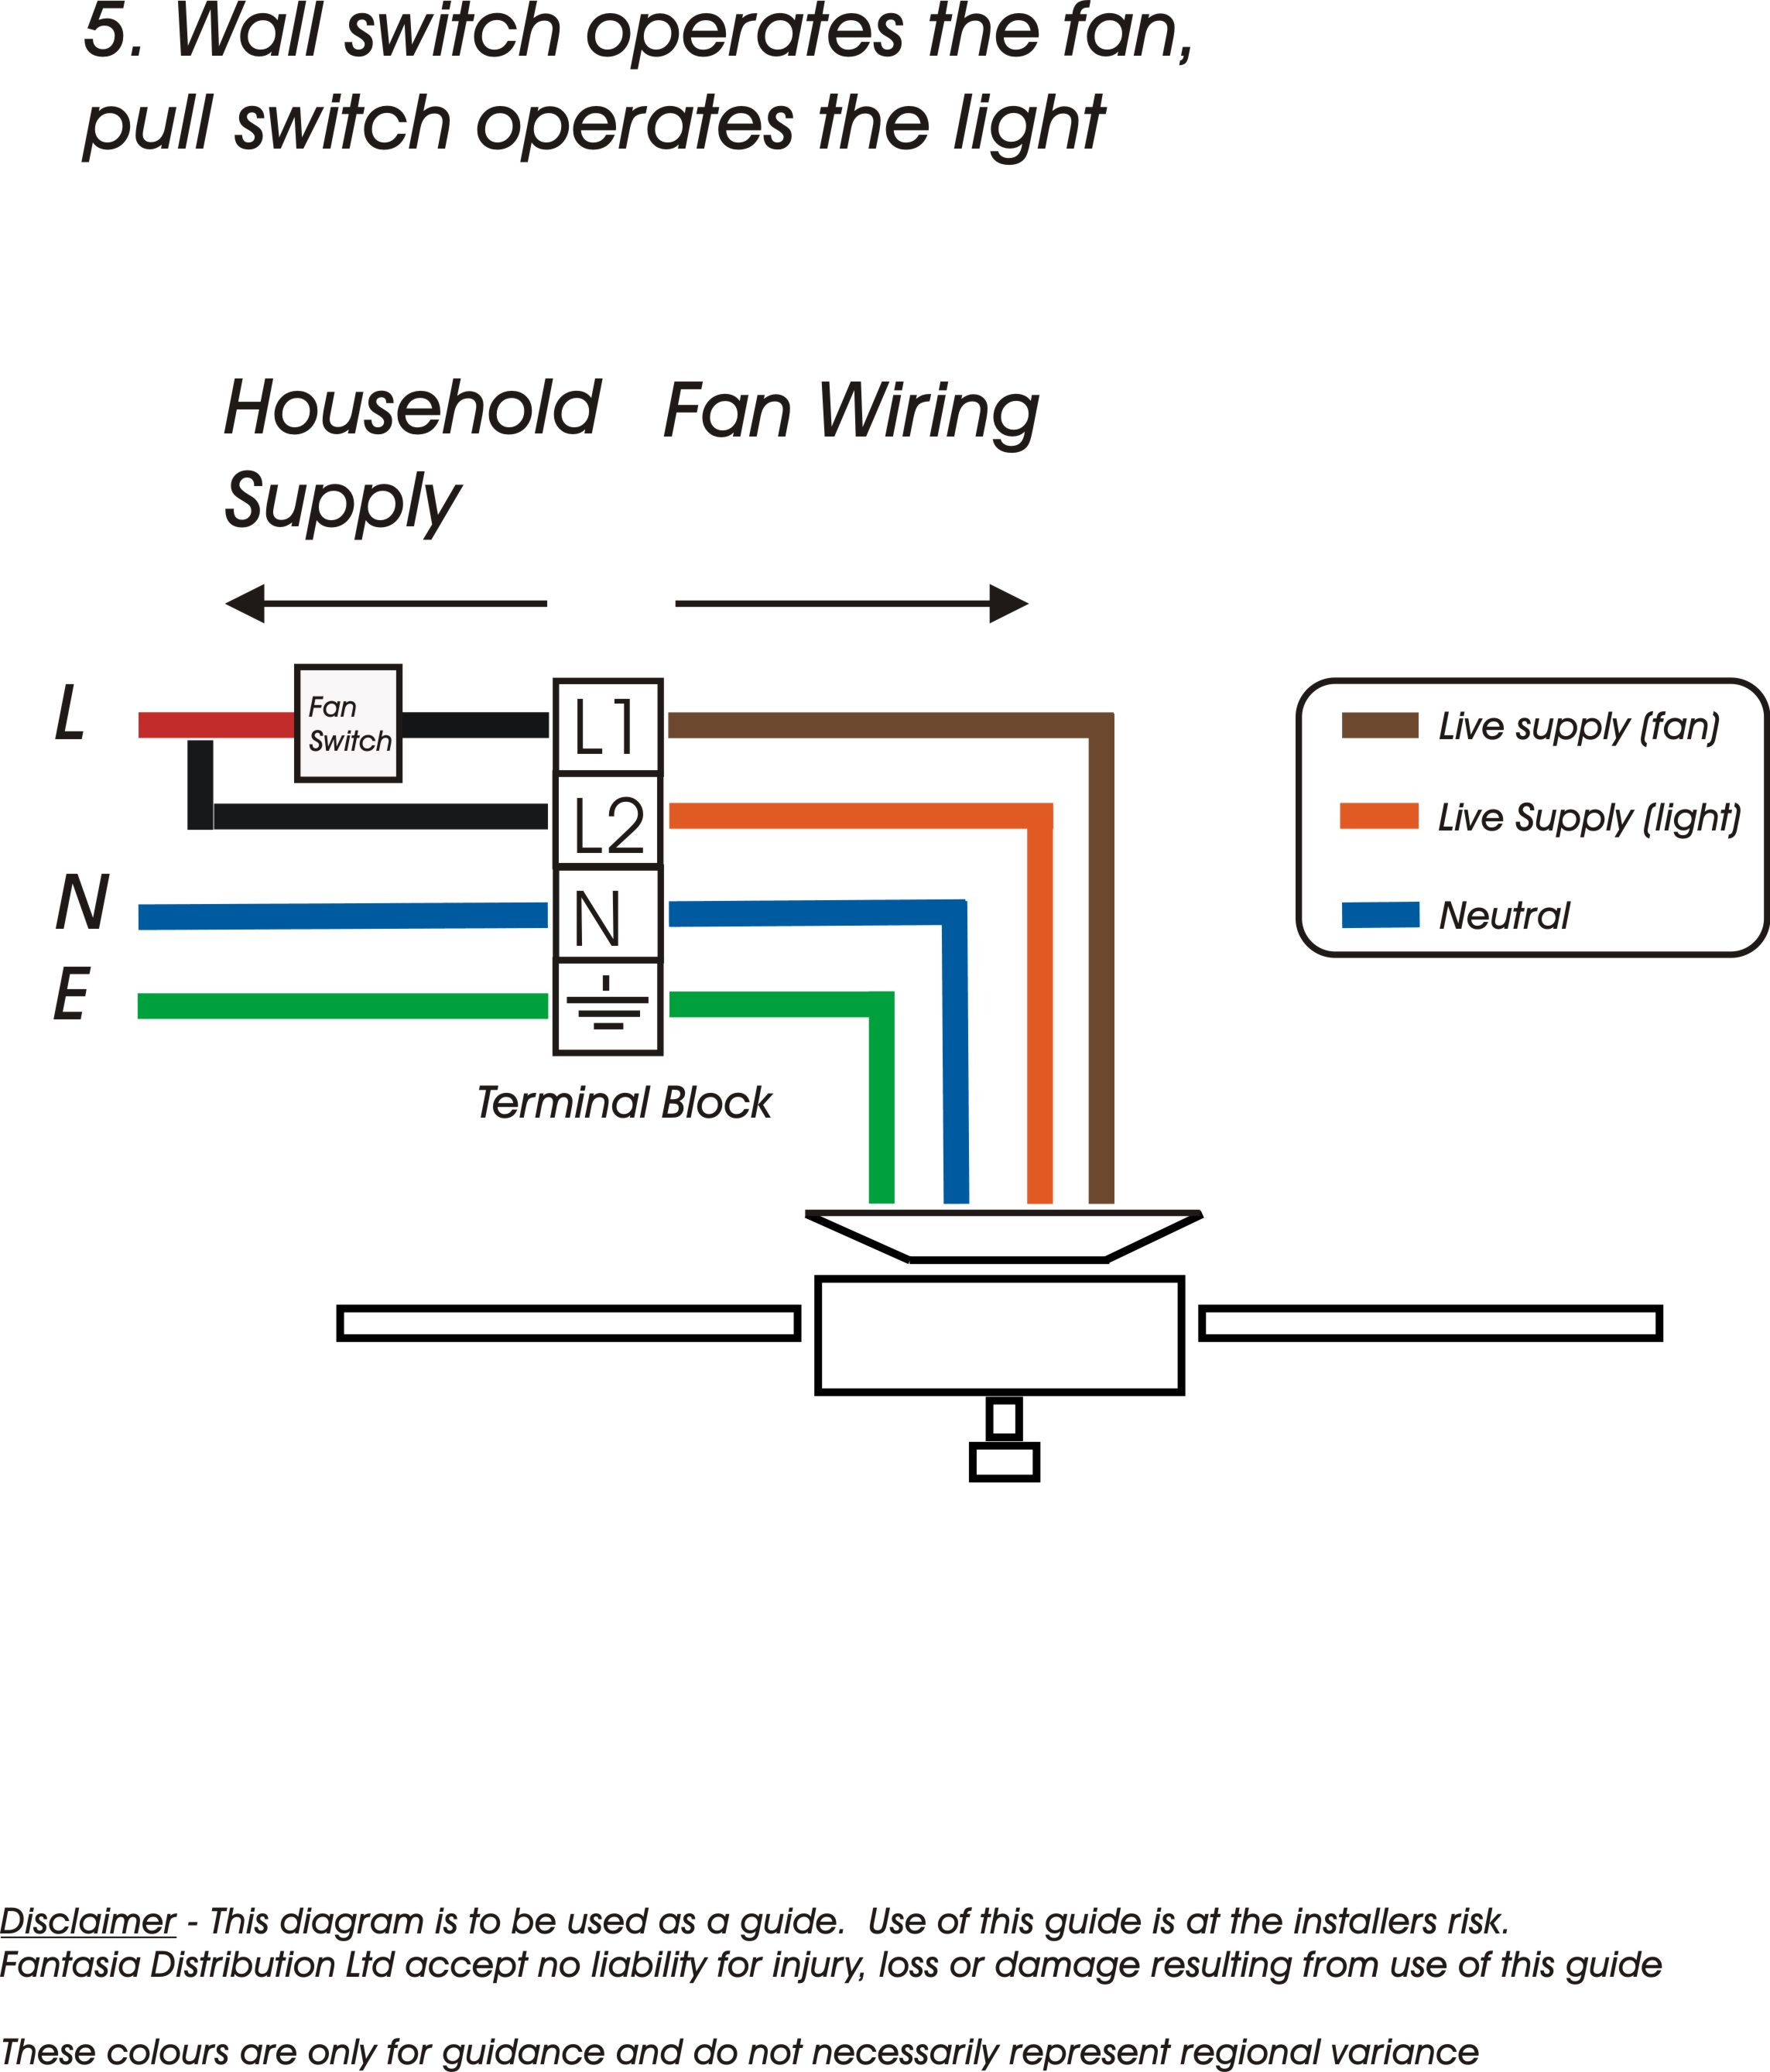 4 wire fan switch diagram 4 image wiring diagram bahama ceiling fan wiring diagram bahama image on 4 wire fan switch diagram